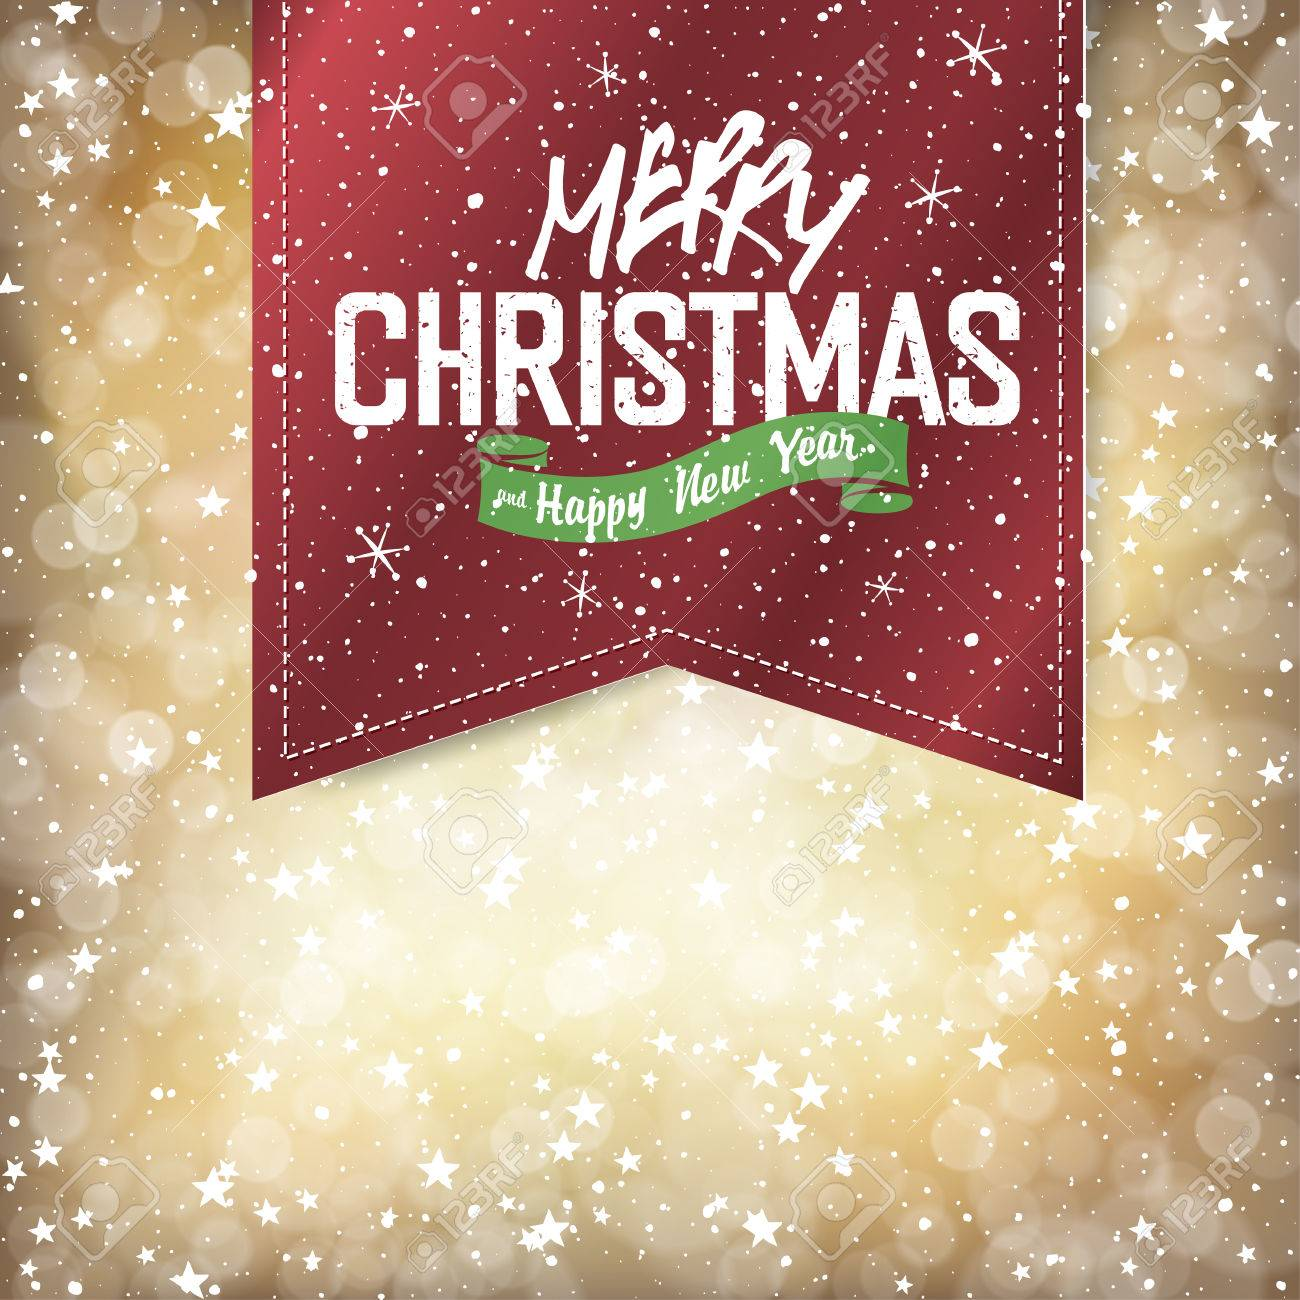 Merry Christmas Lights Background with Christmas Lettering - 48001828